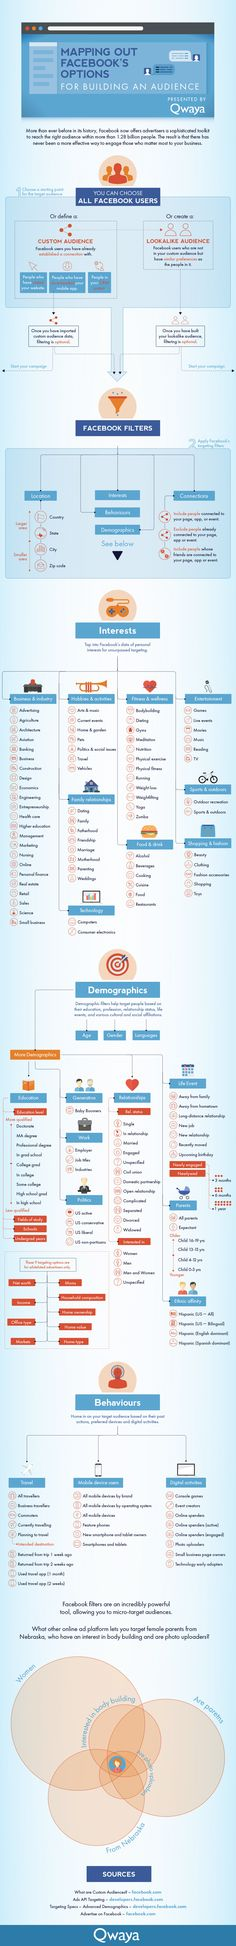 Finding your audience on Facebook [INFOGRAPHIC]